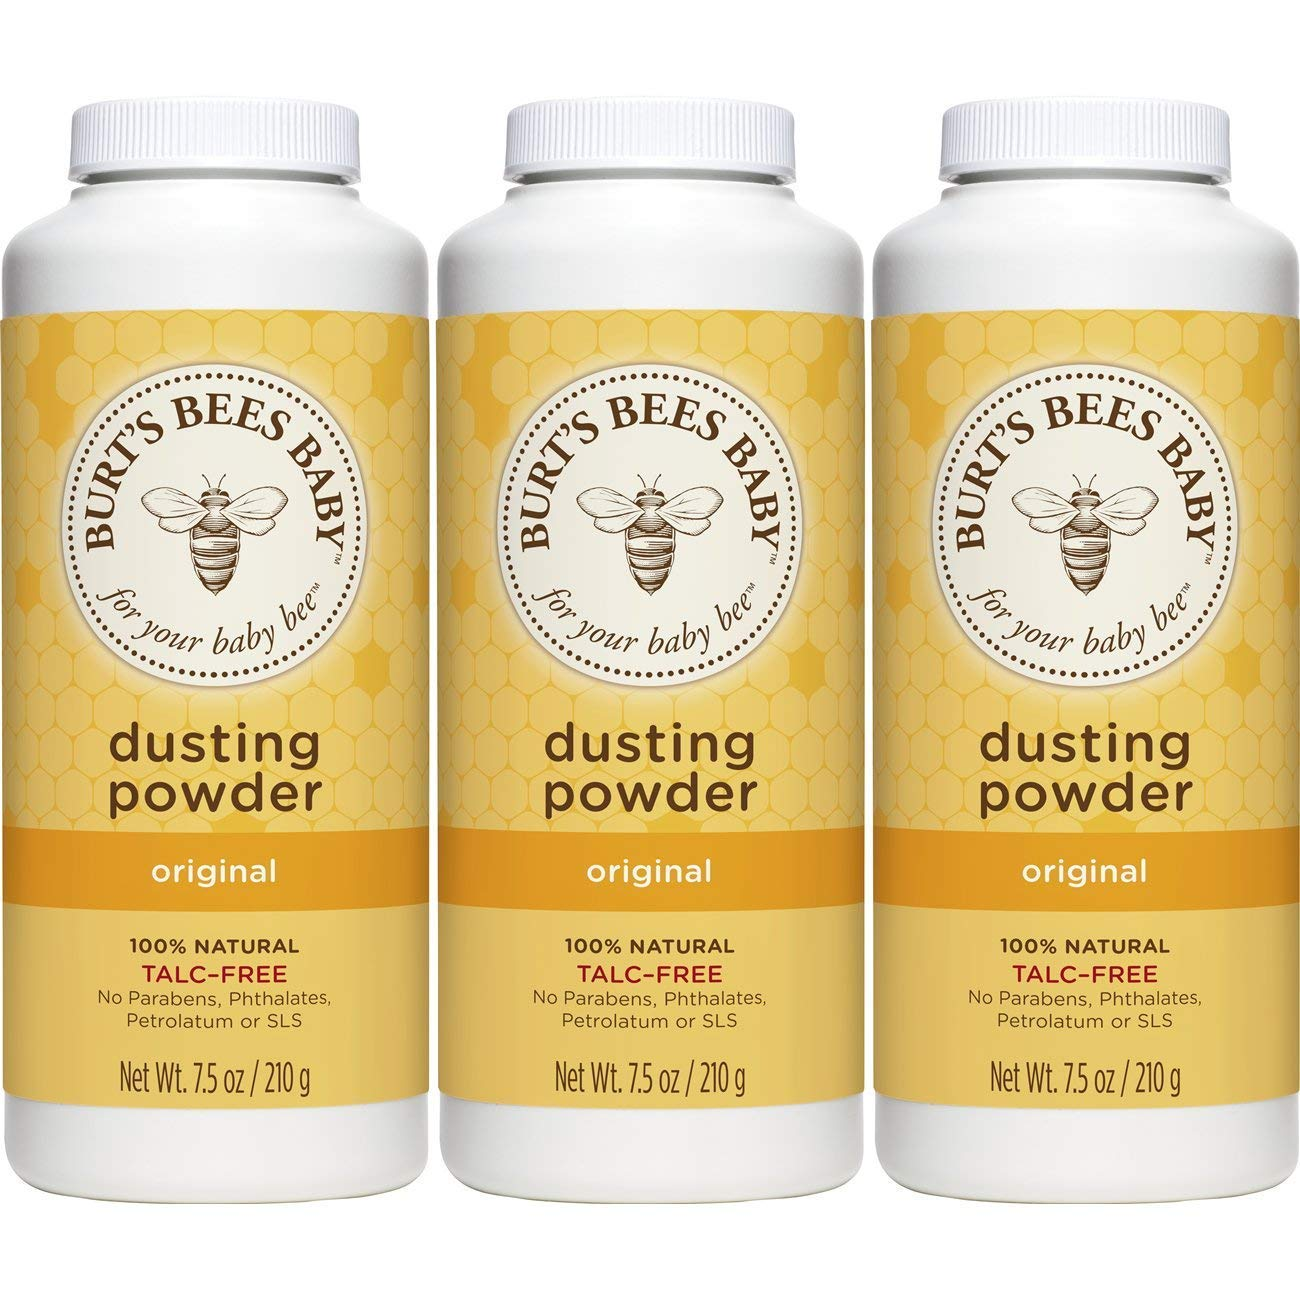 Burt's Bees baby 100% natural dusting powder, 7.5 ounces (pack of 3), 22.5 Ounce